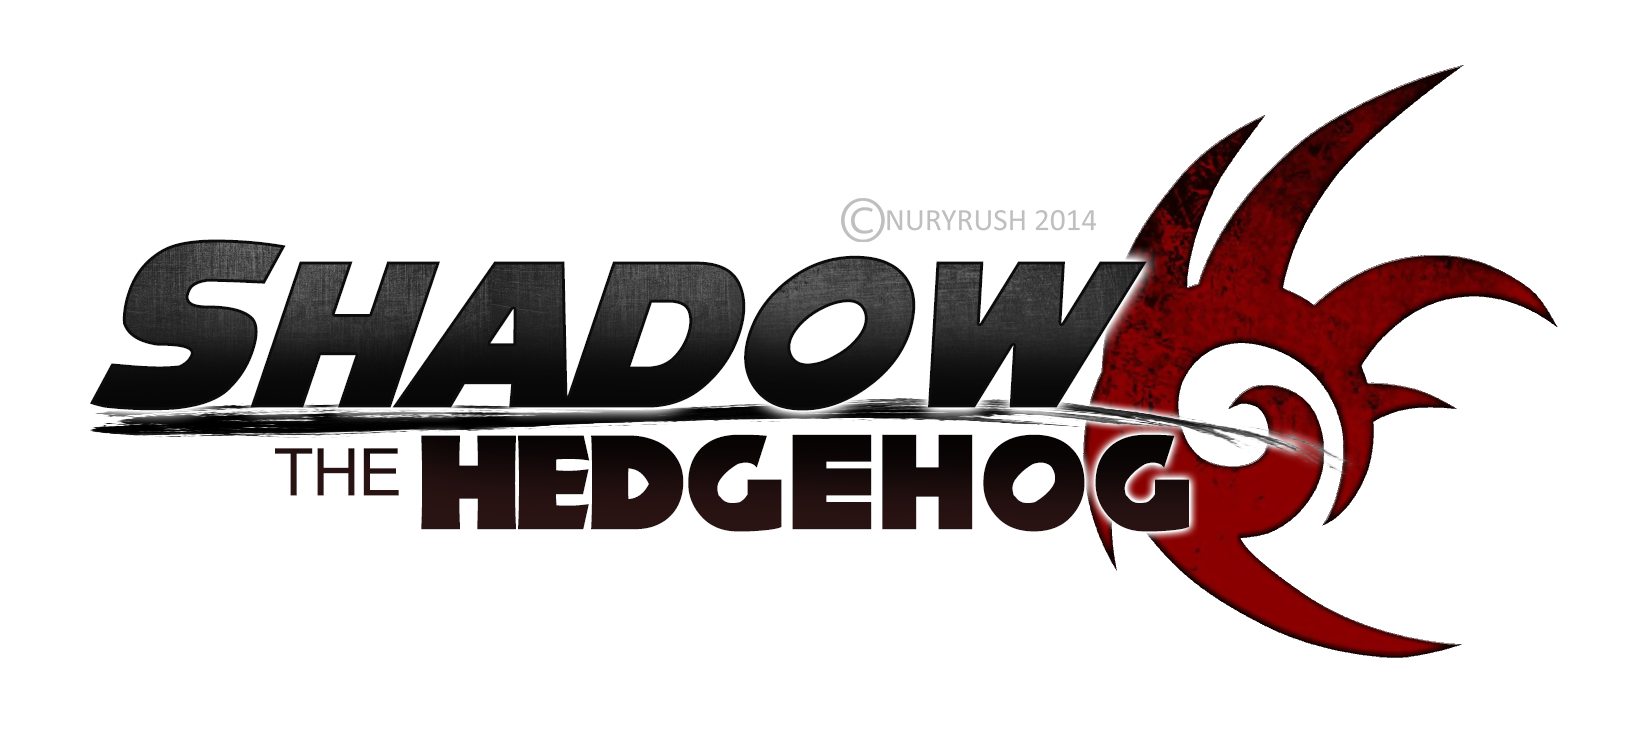 shadow the hedgehog logo wallpaper wwwimgkidcom the